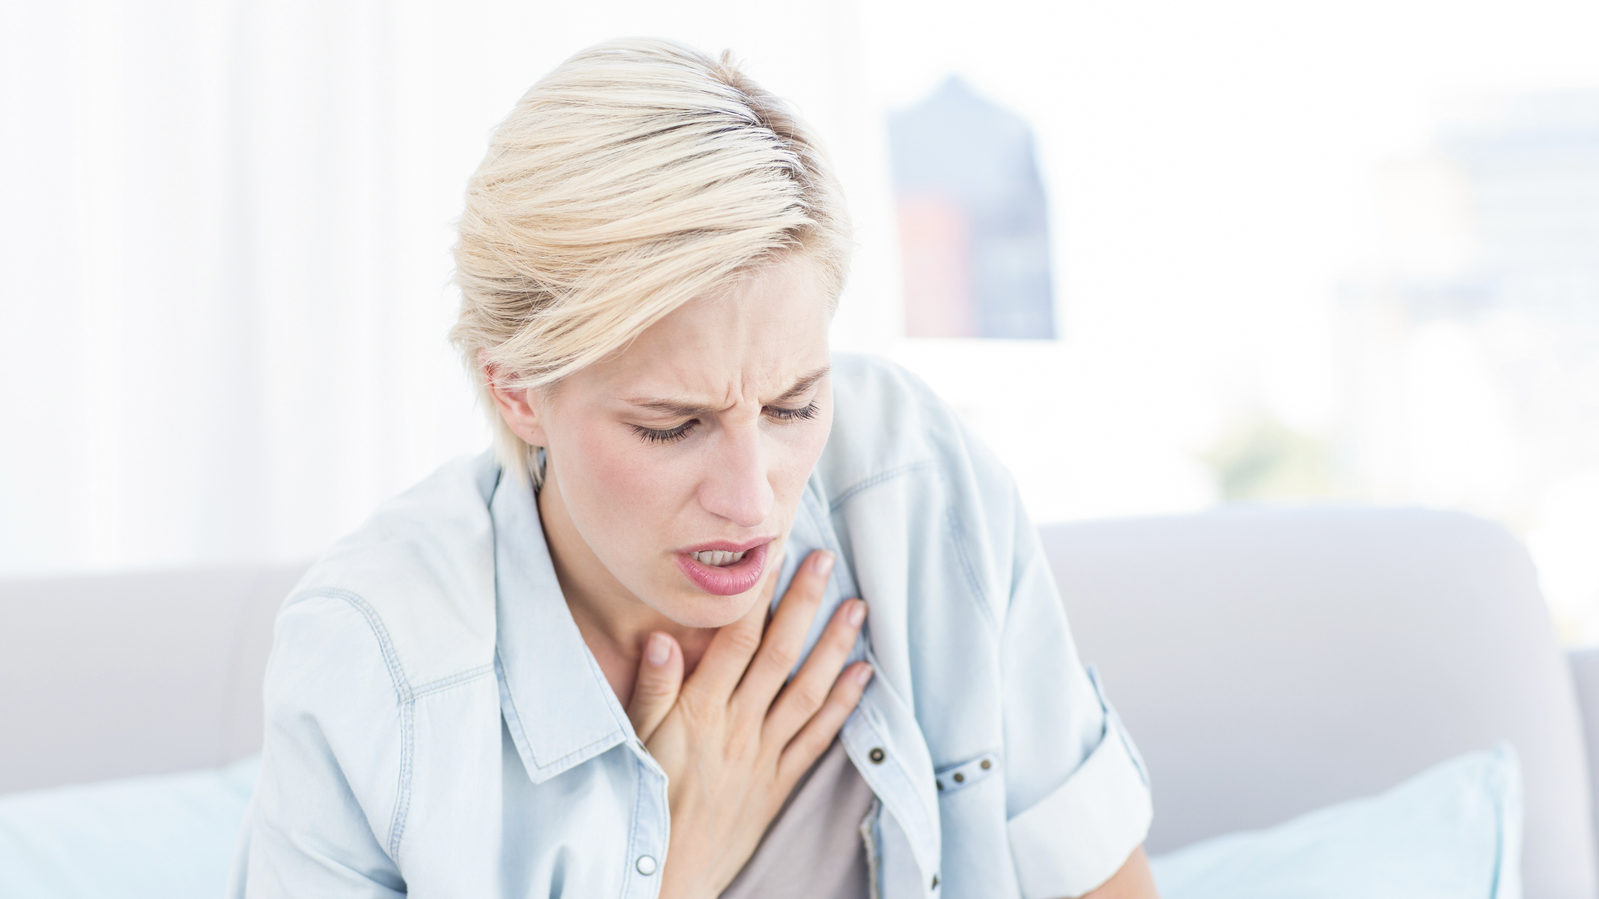 If severe asthma keeps you from working you may qualify for disability benefits